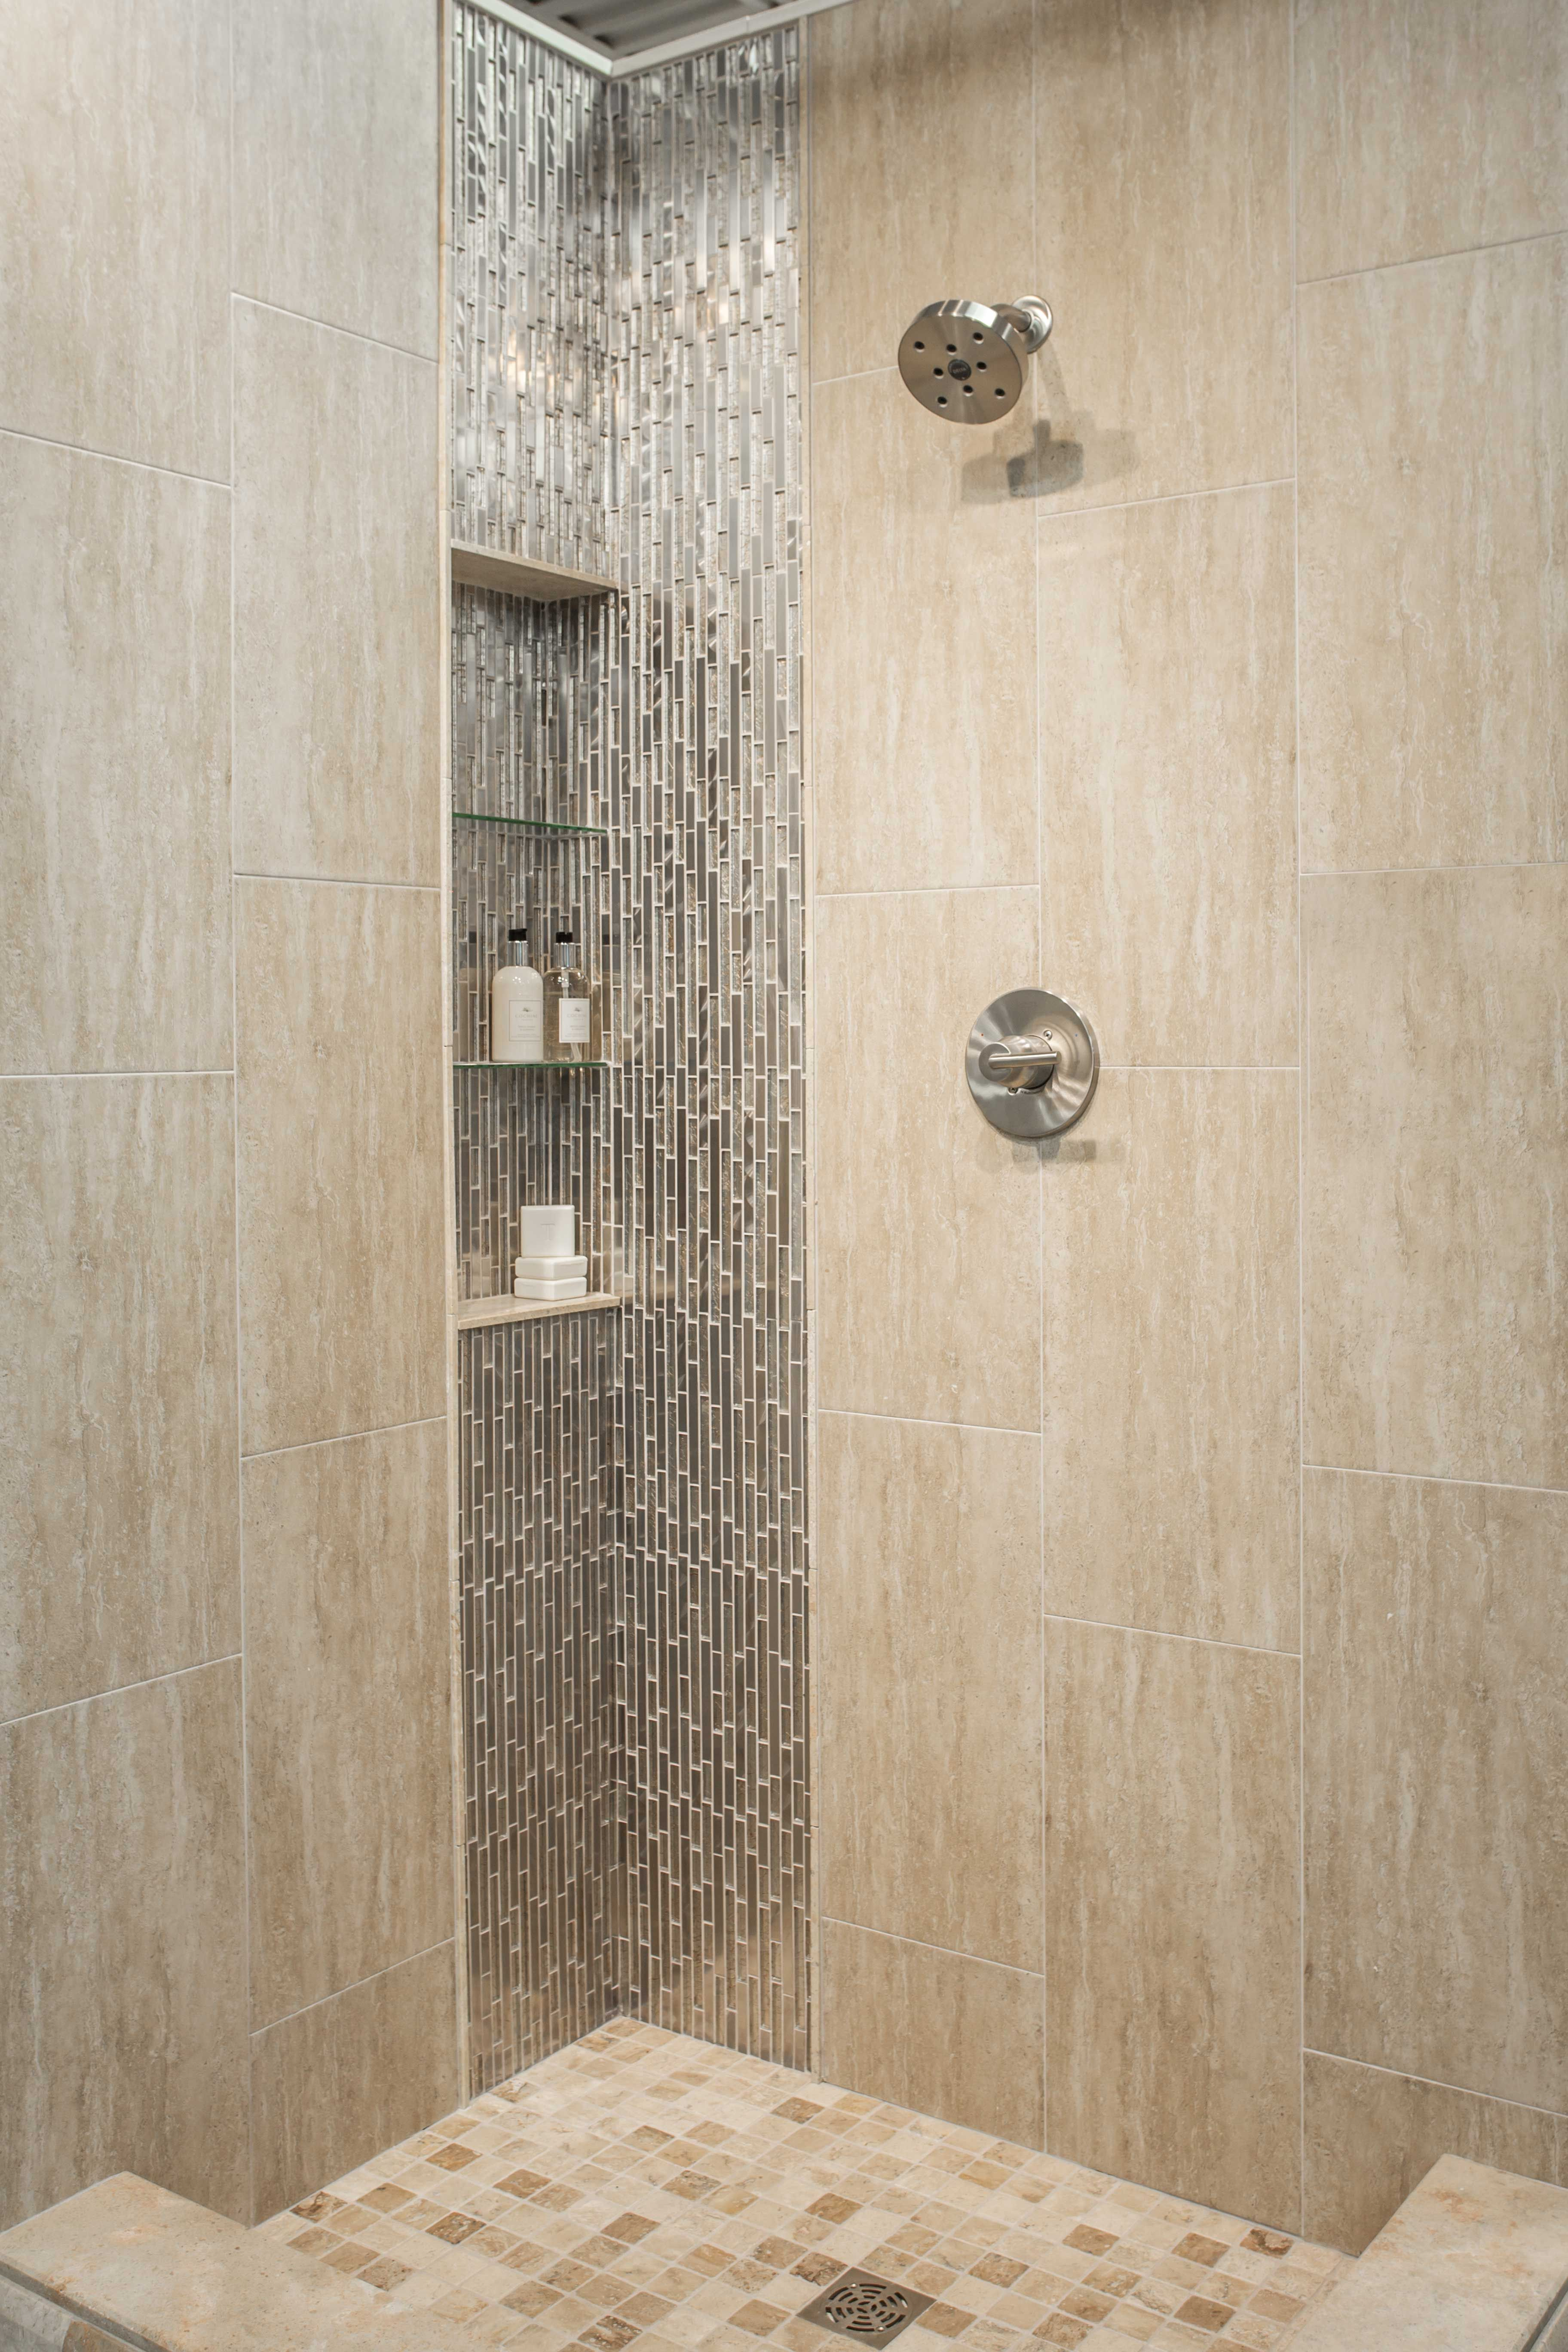 Bathroom shower wall tile - Classico Beige Porcelain Wall Tile ...